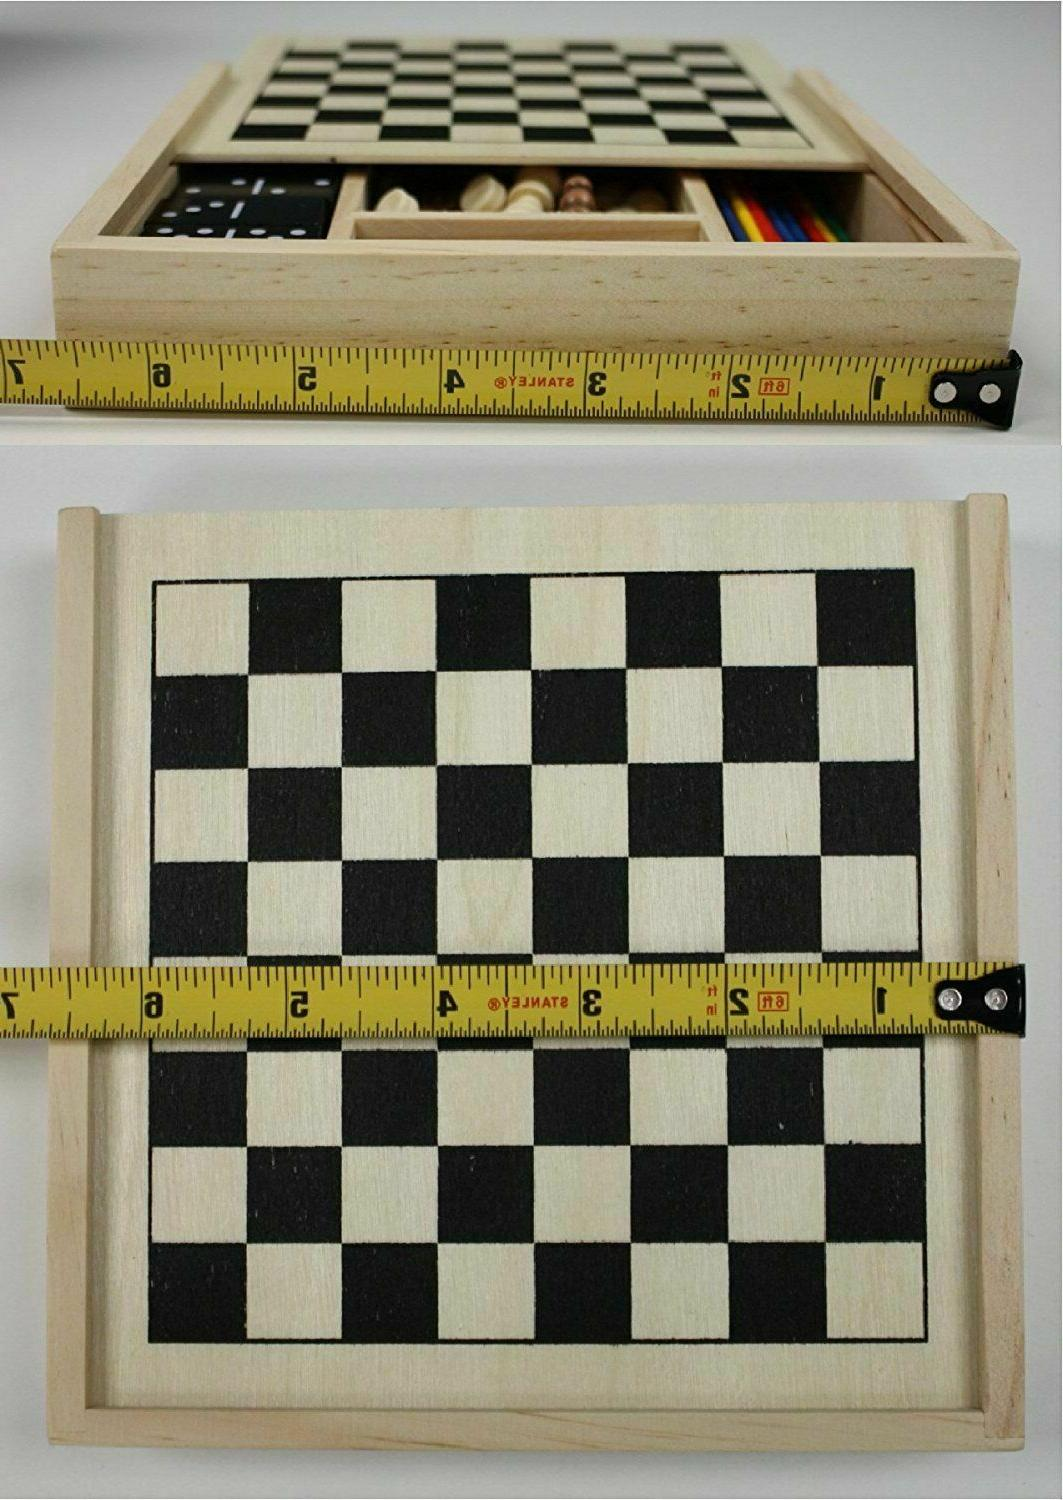 5-in-1 Wooden Set Chess Pick